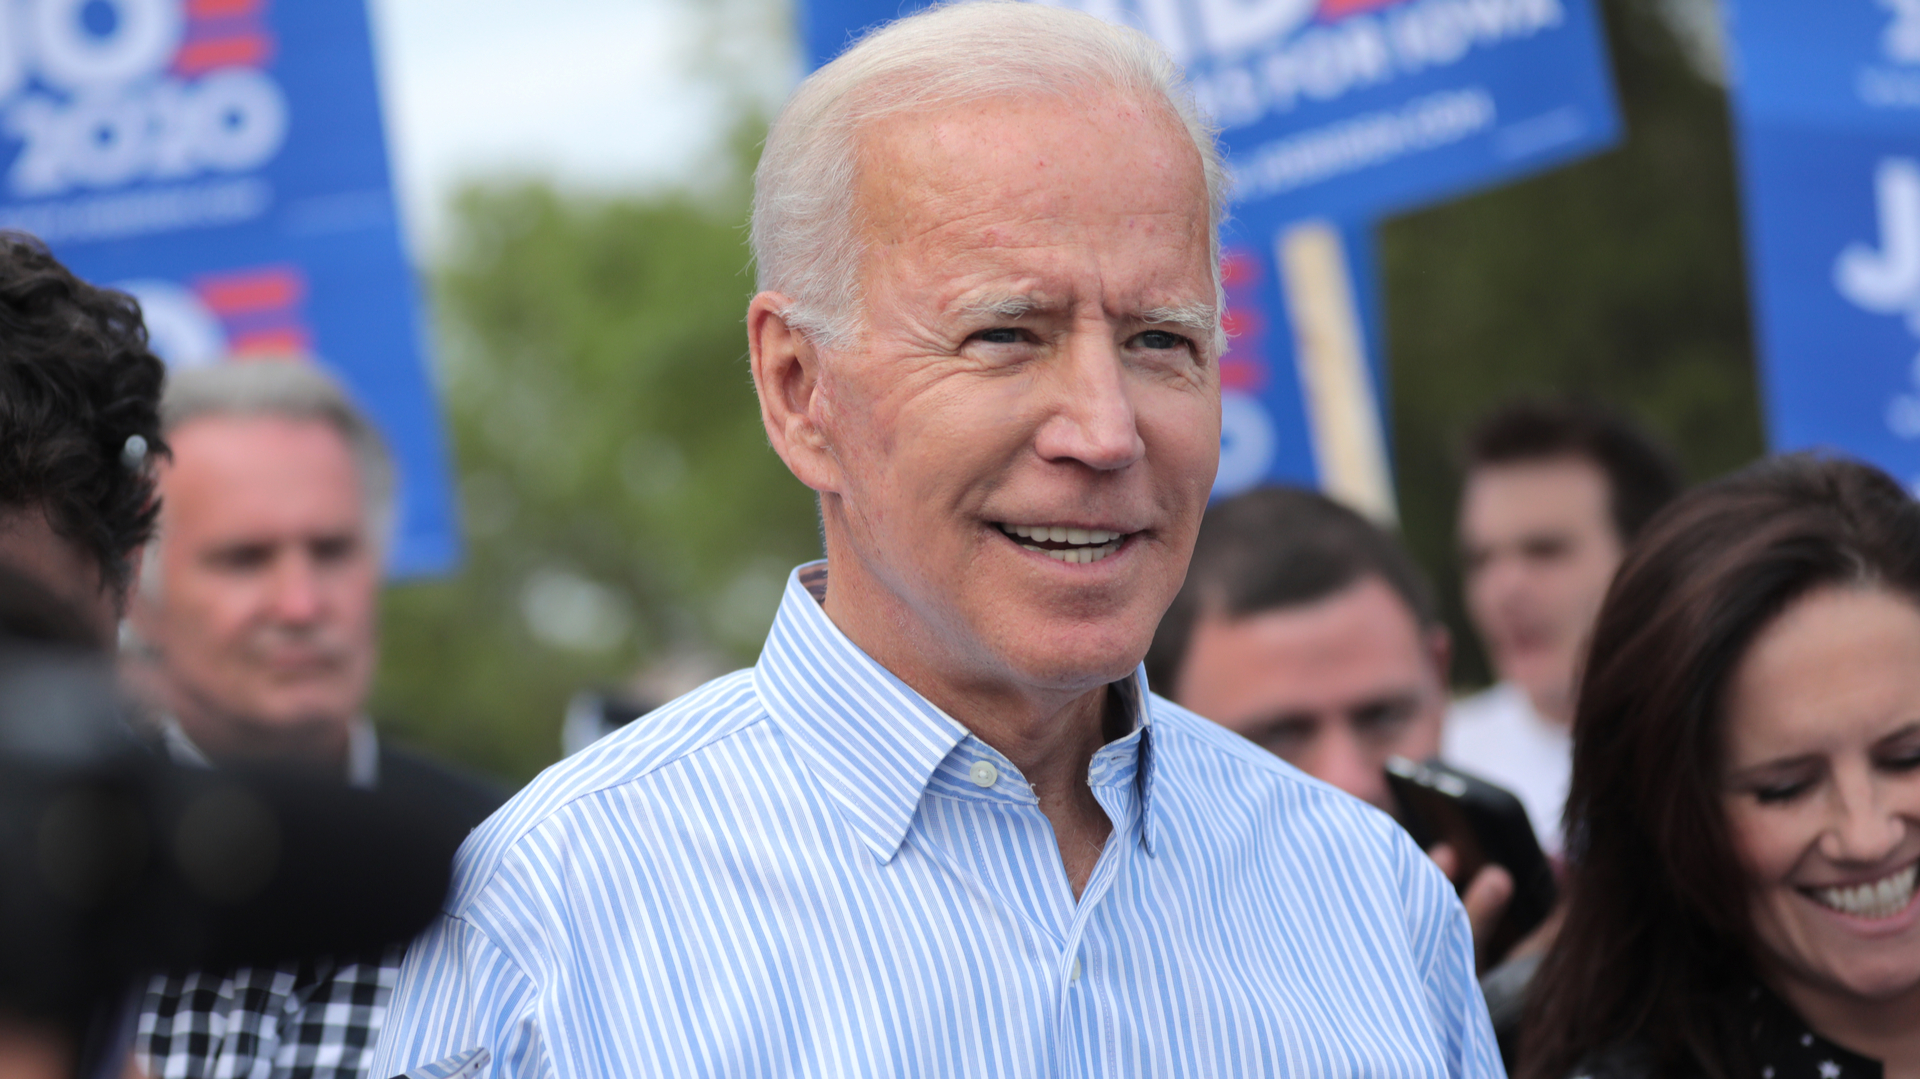 What a Biden presidency means for your money